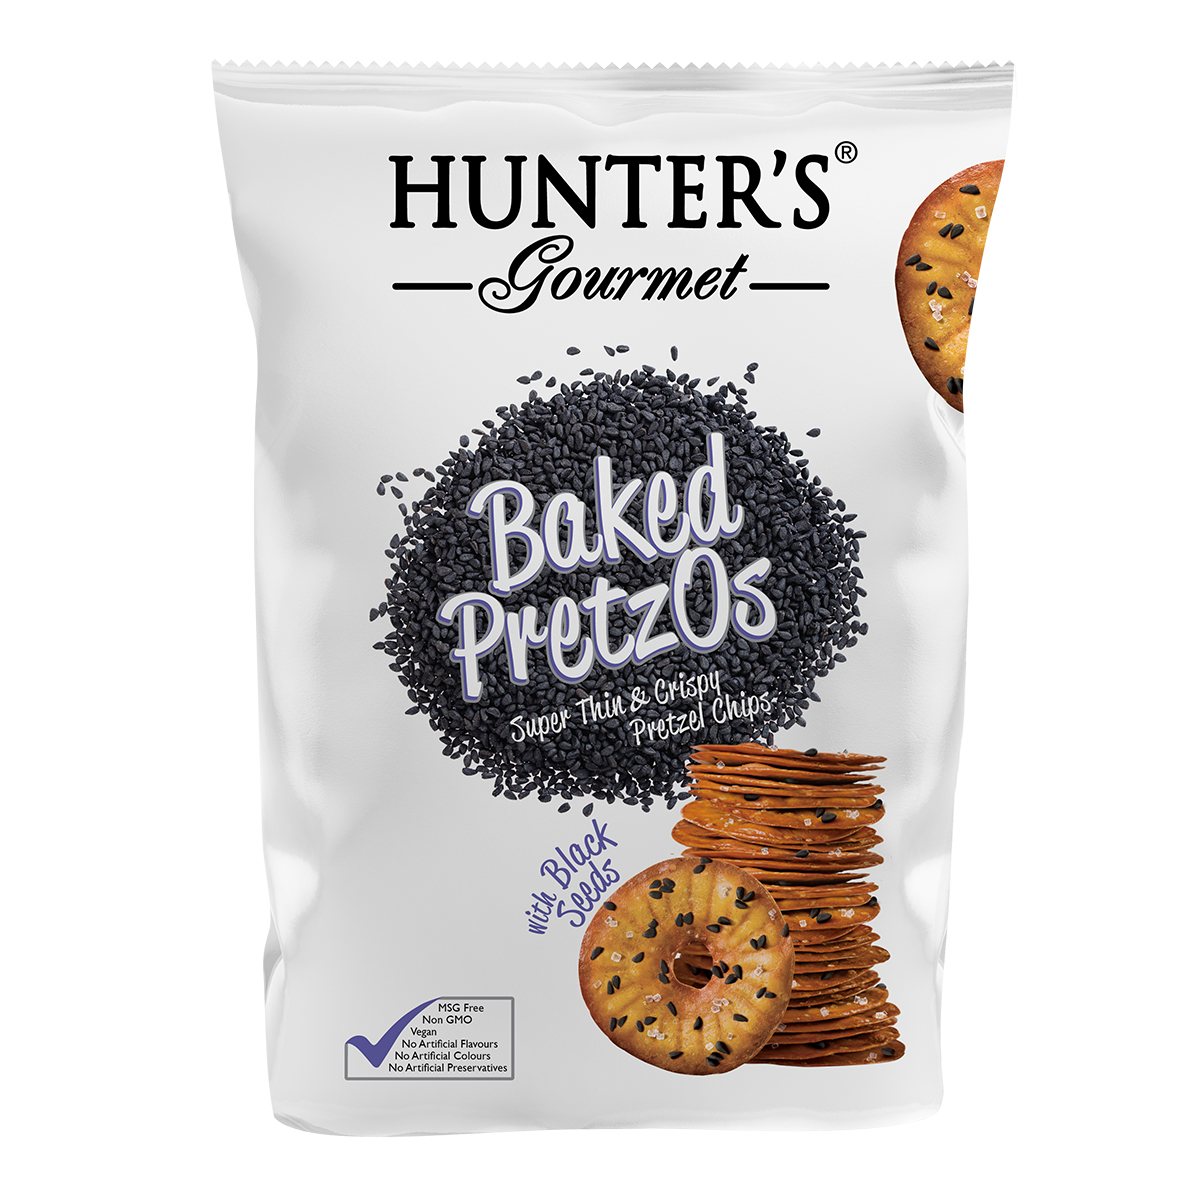 Hunter's Gourmet Baked PretzOs - with Black Seeds (180gm)